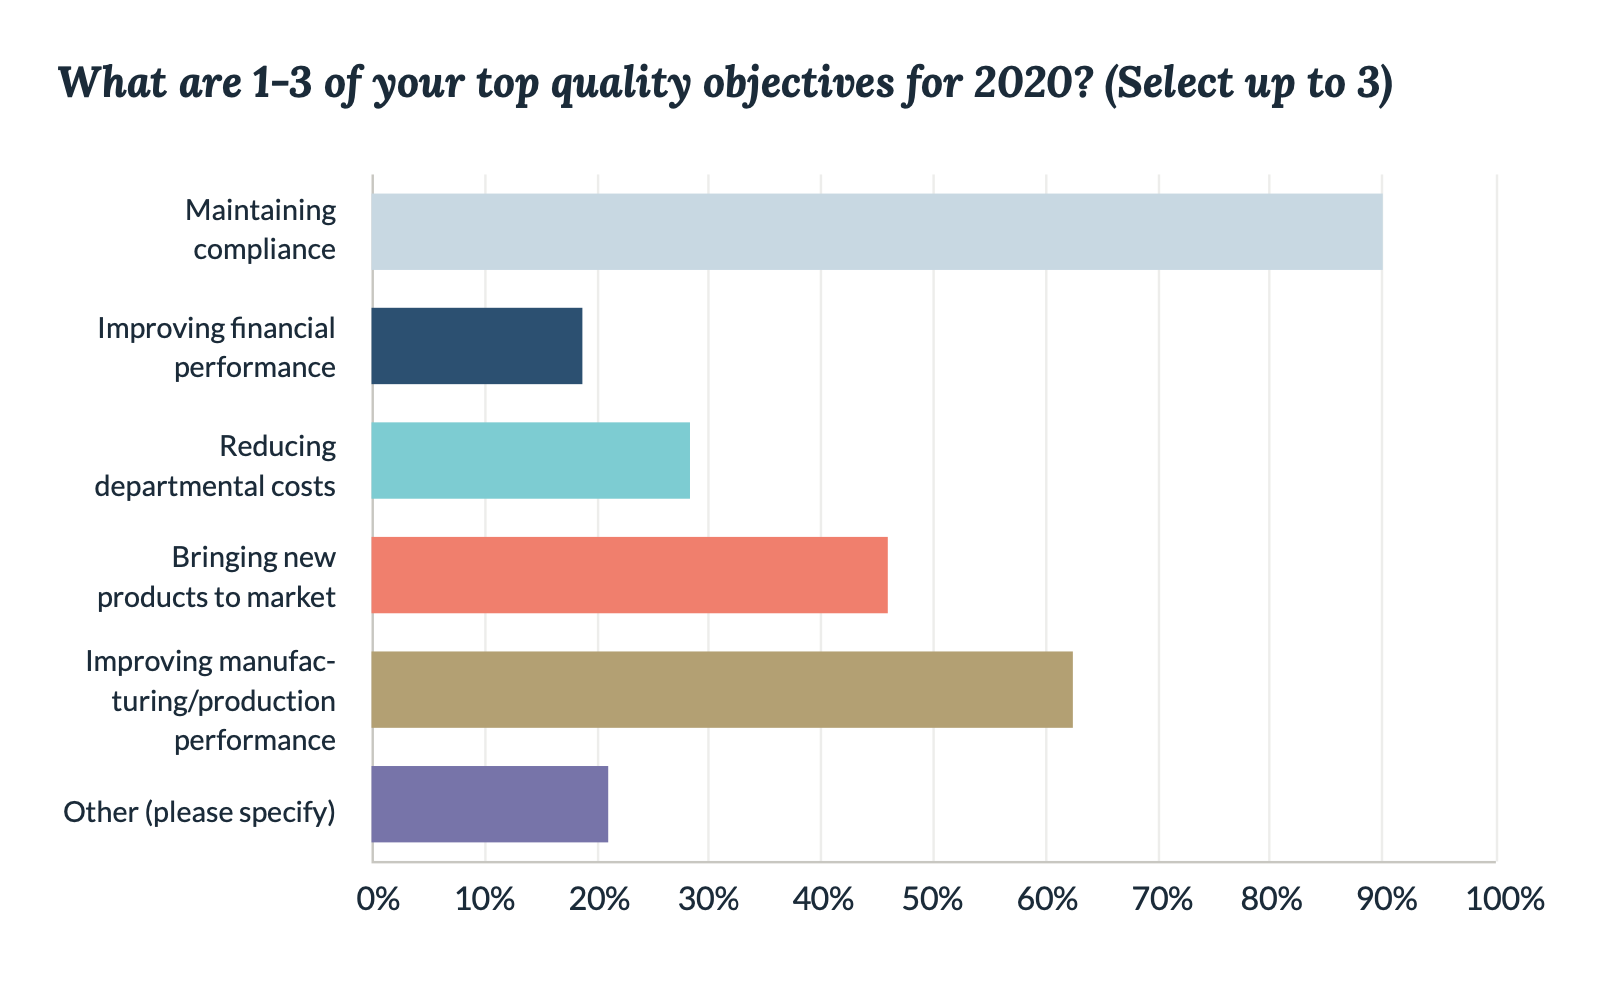 Life Science Quality Objectives 2020